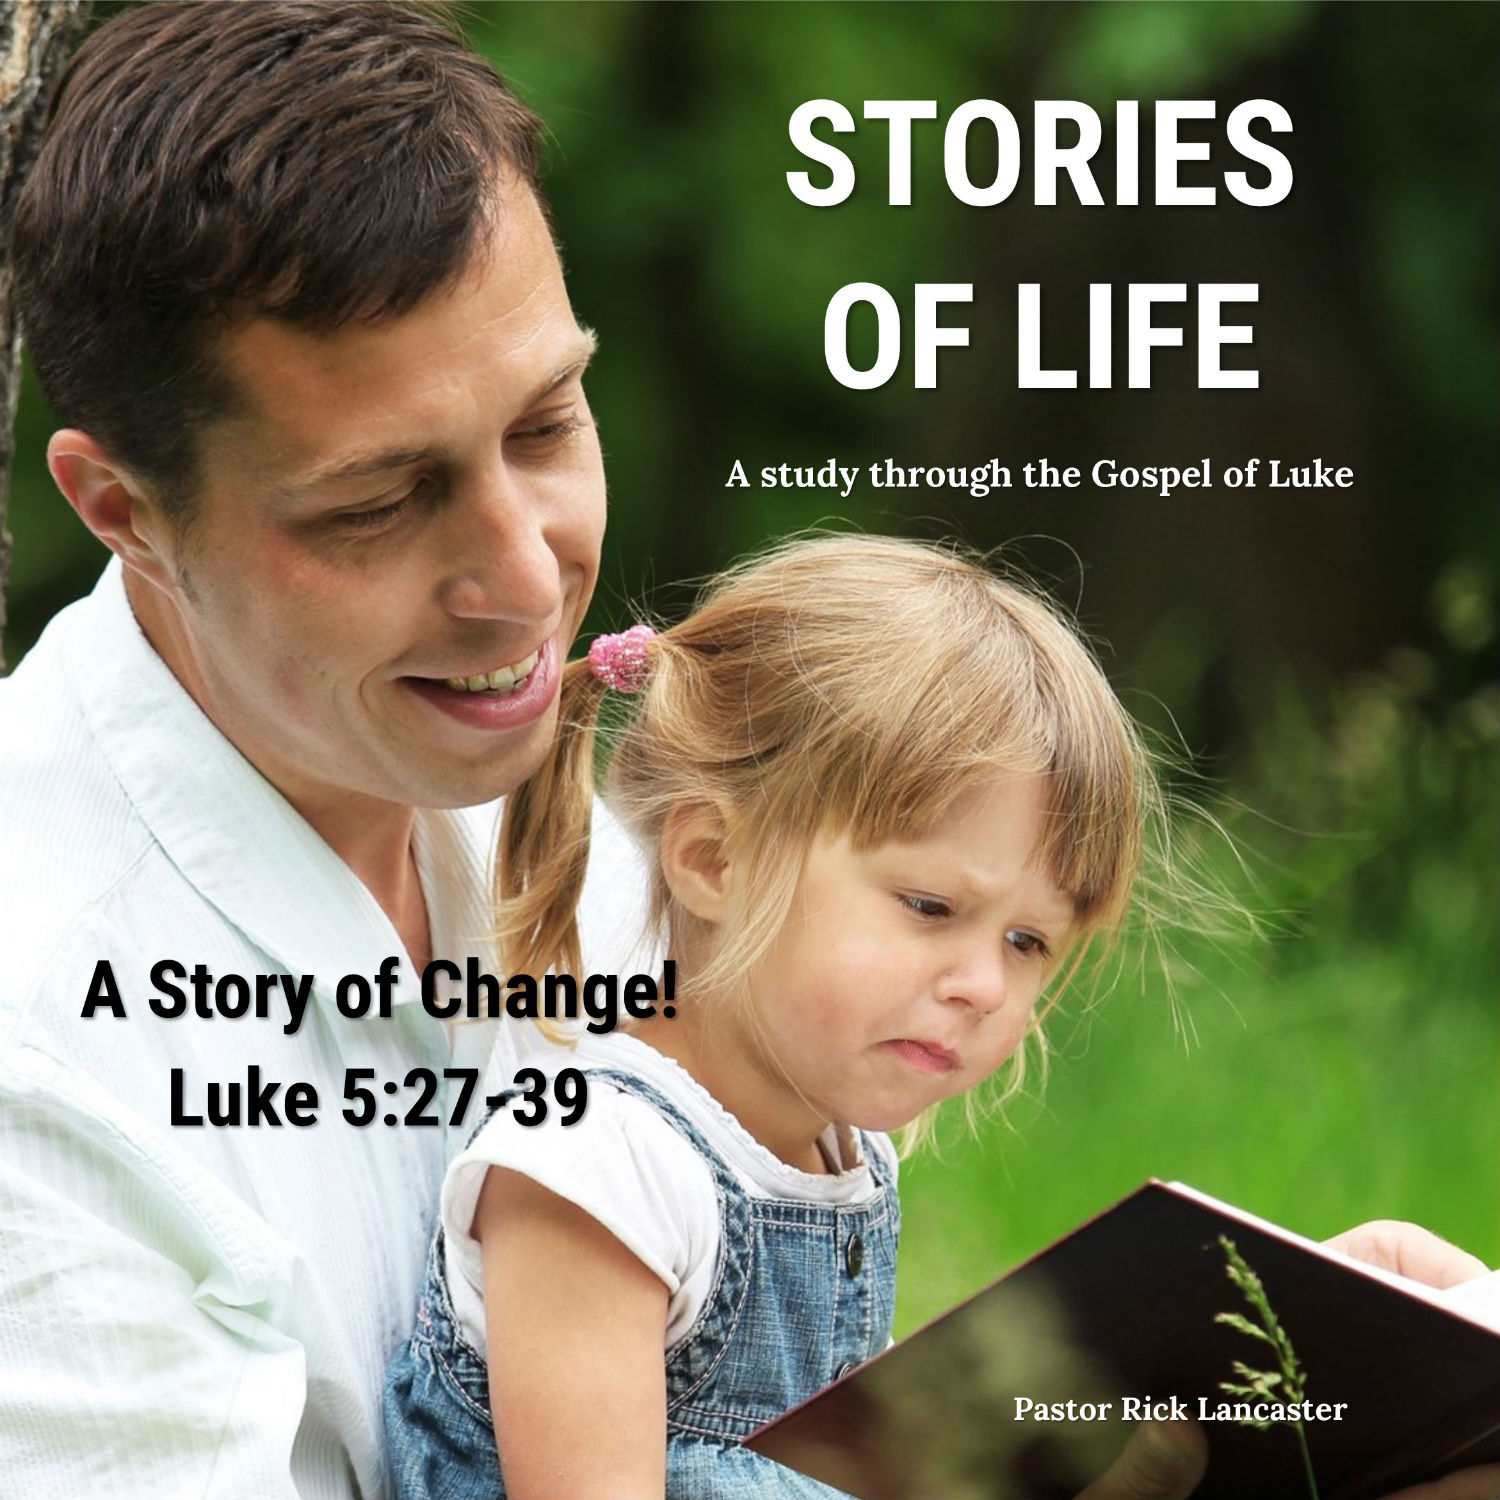 A Story of Change – Luke 5:27-39